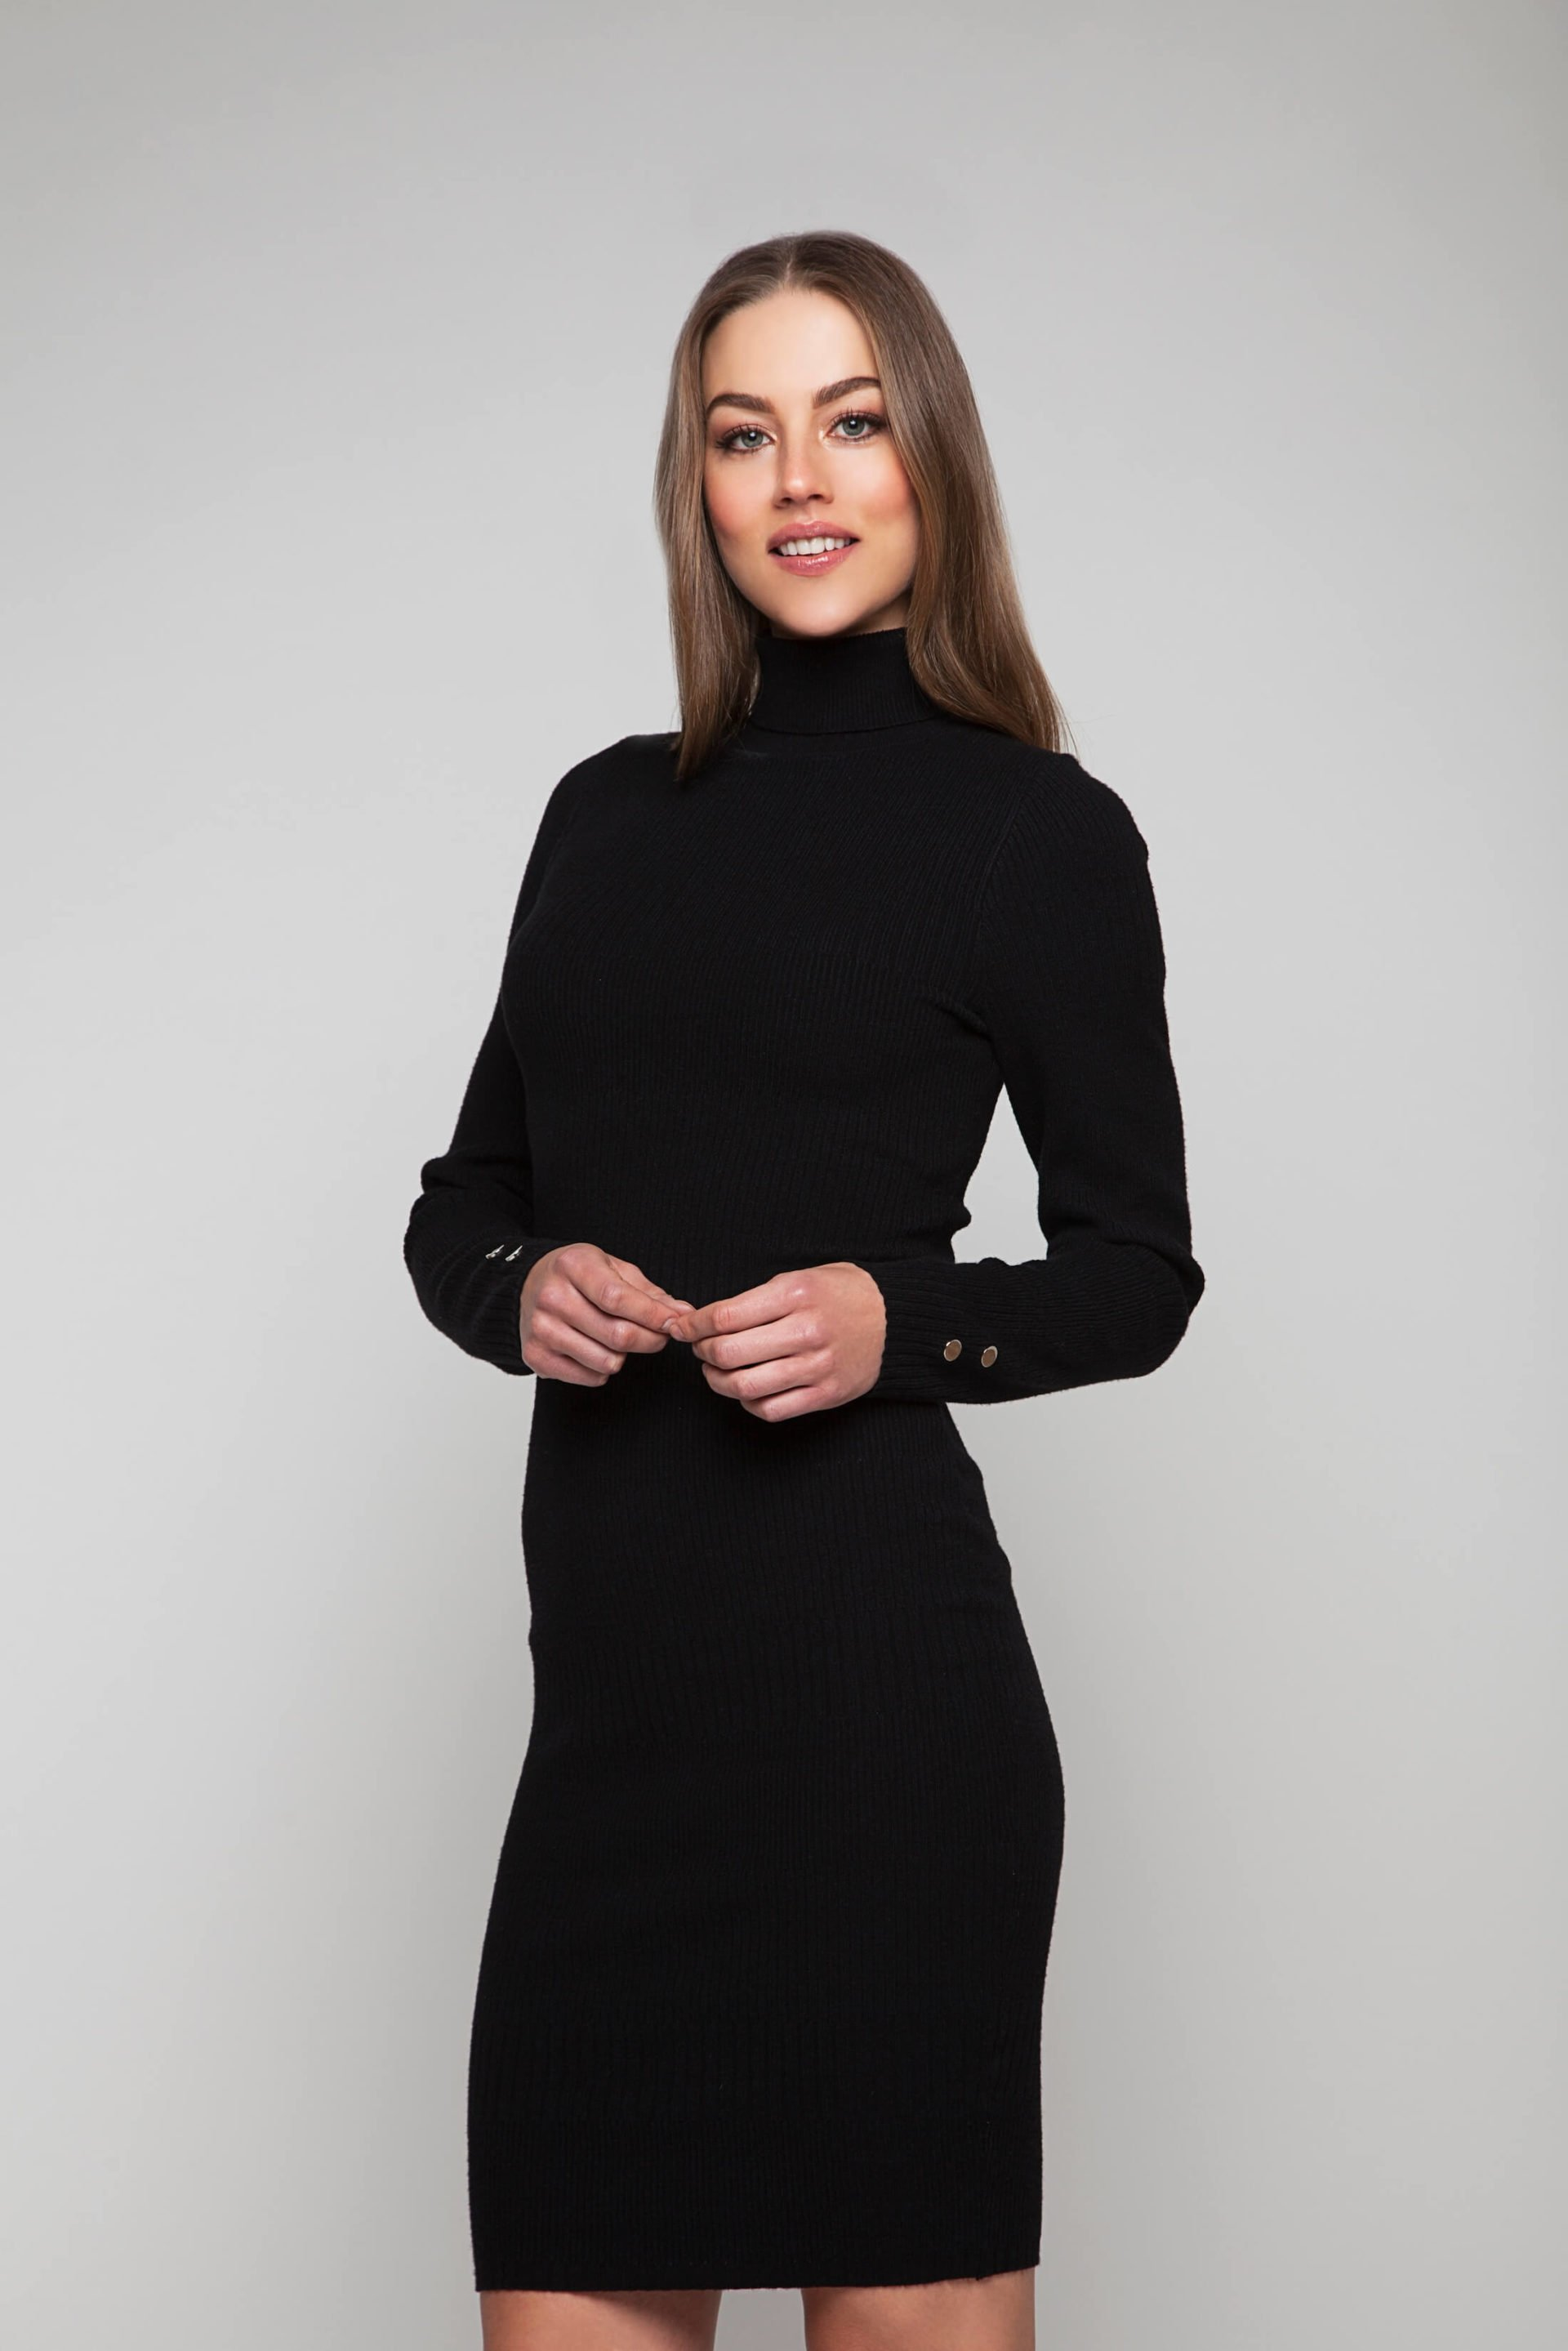 Soft black knitted dress with silver-colour buttons